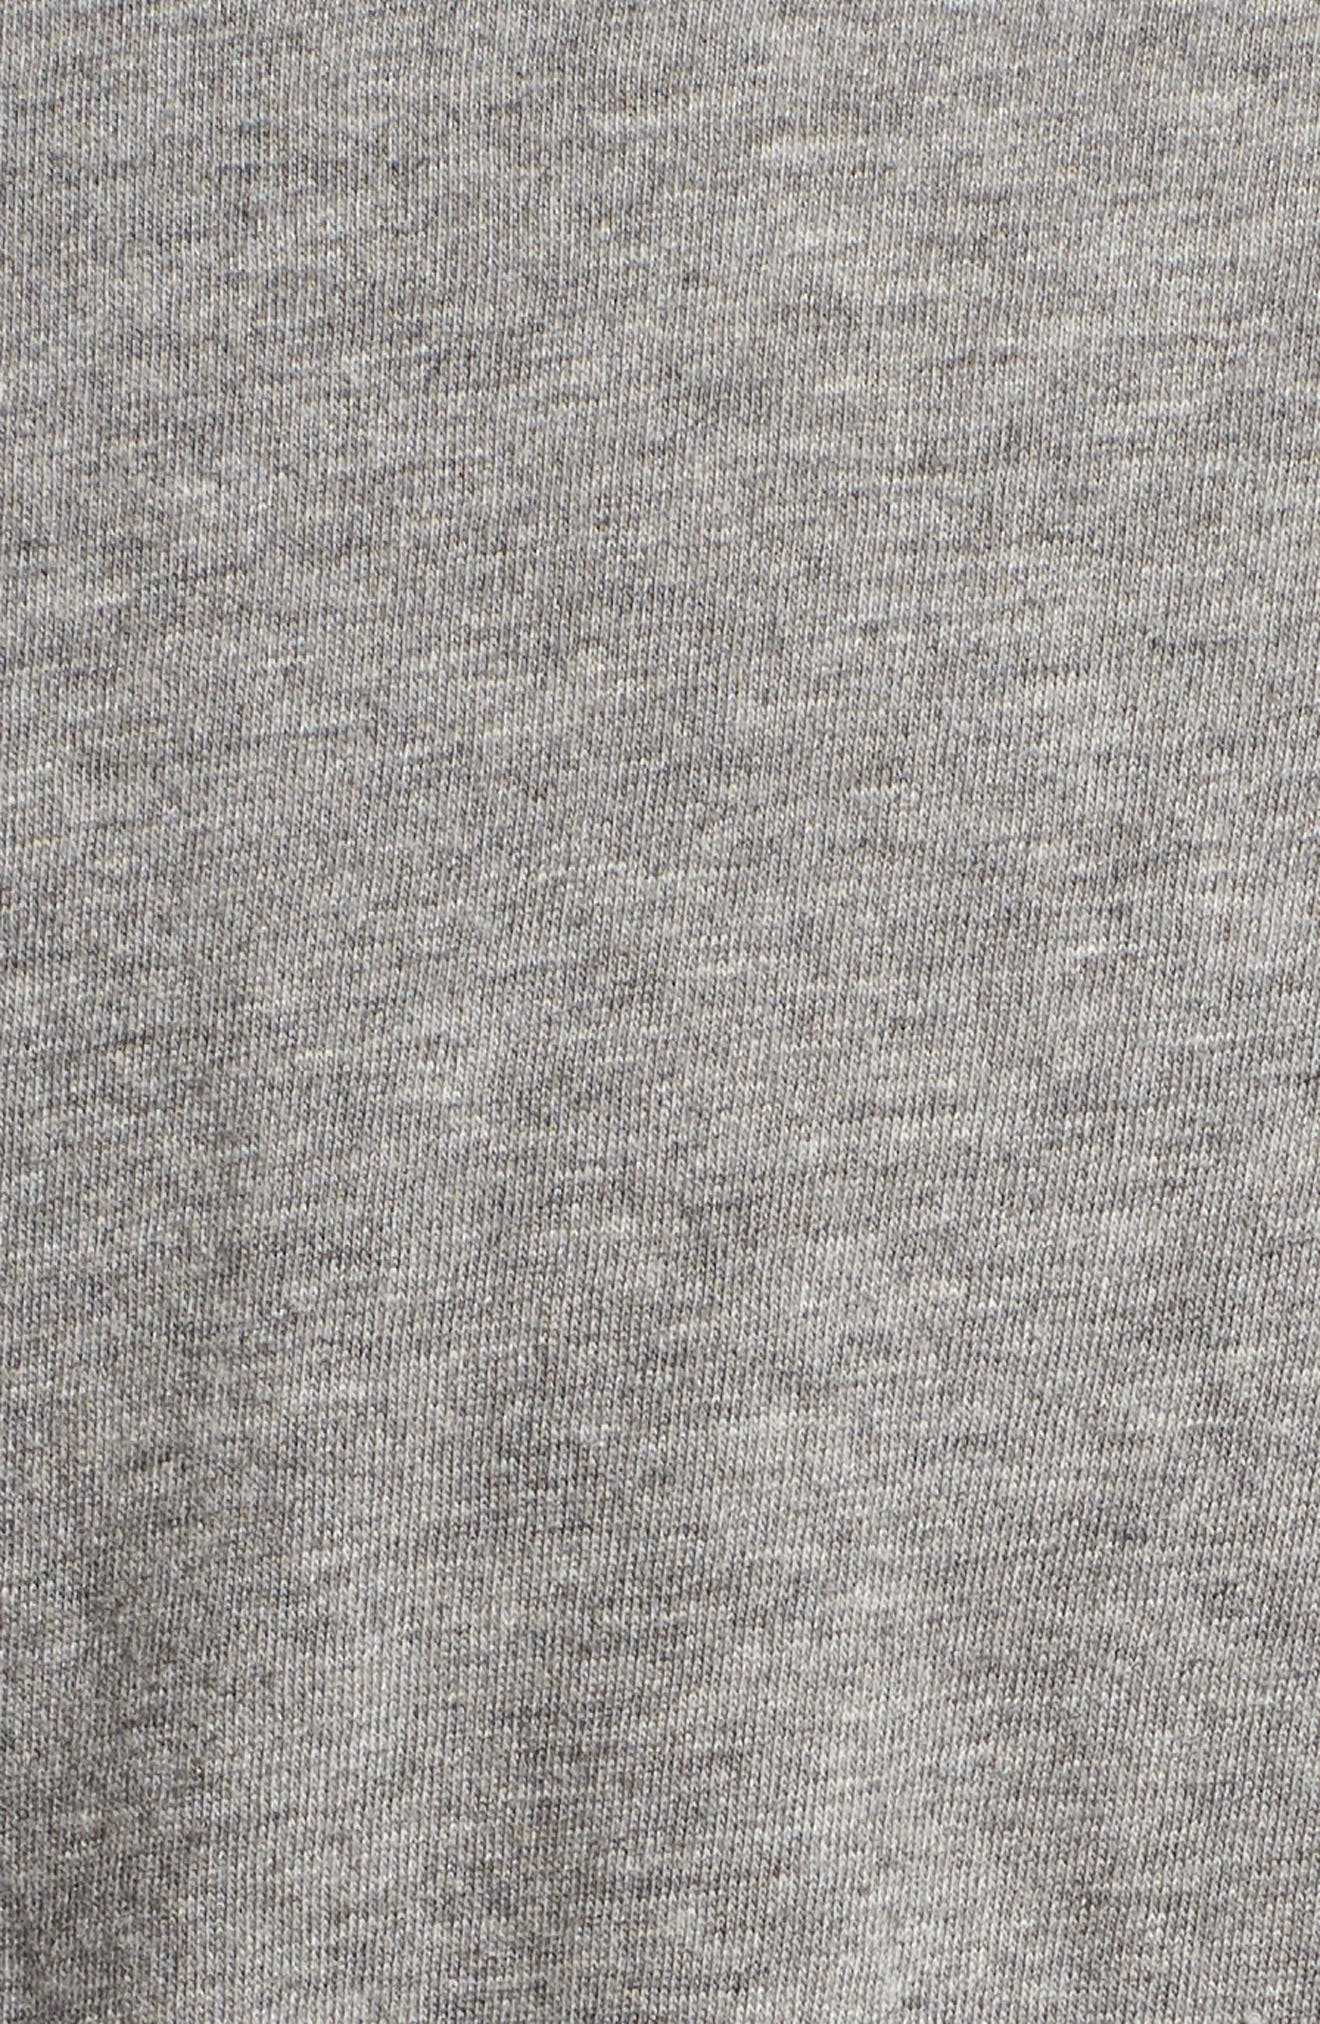 Seattle Mariners Fader Letter Tee,                             Alternate thumbnail 6, color,                             Slate Grey